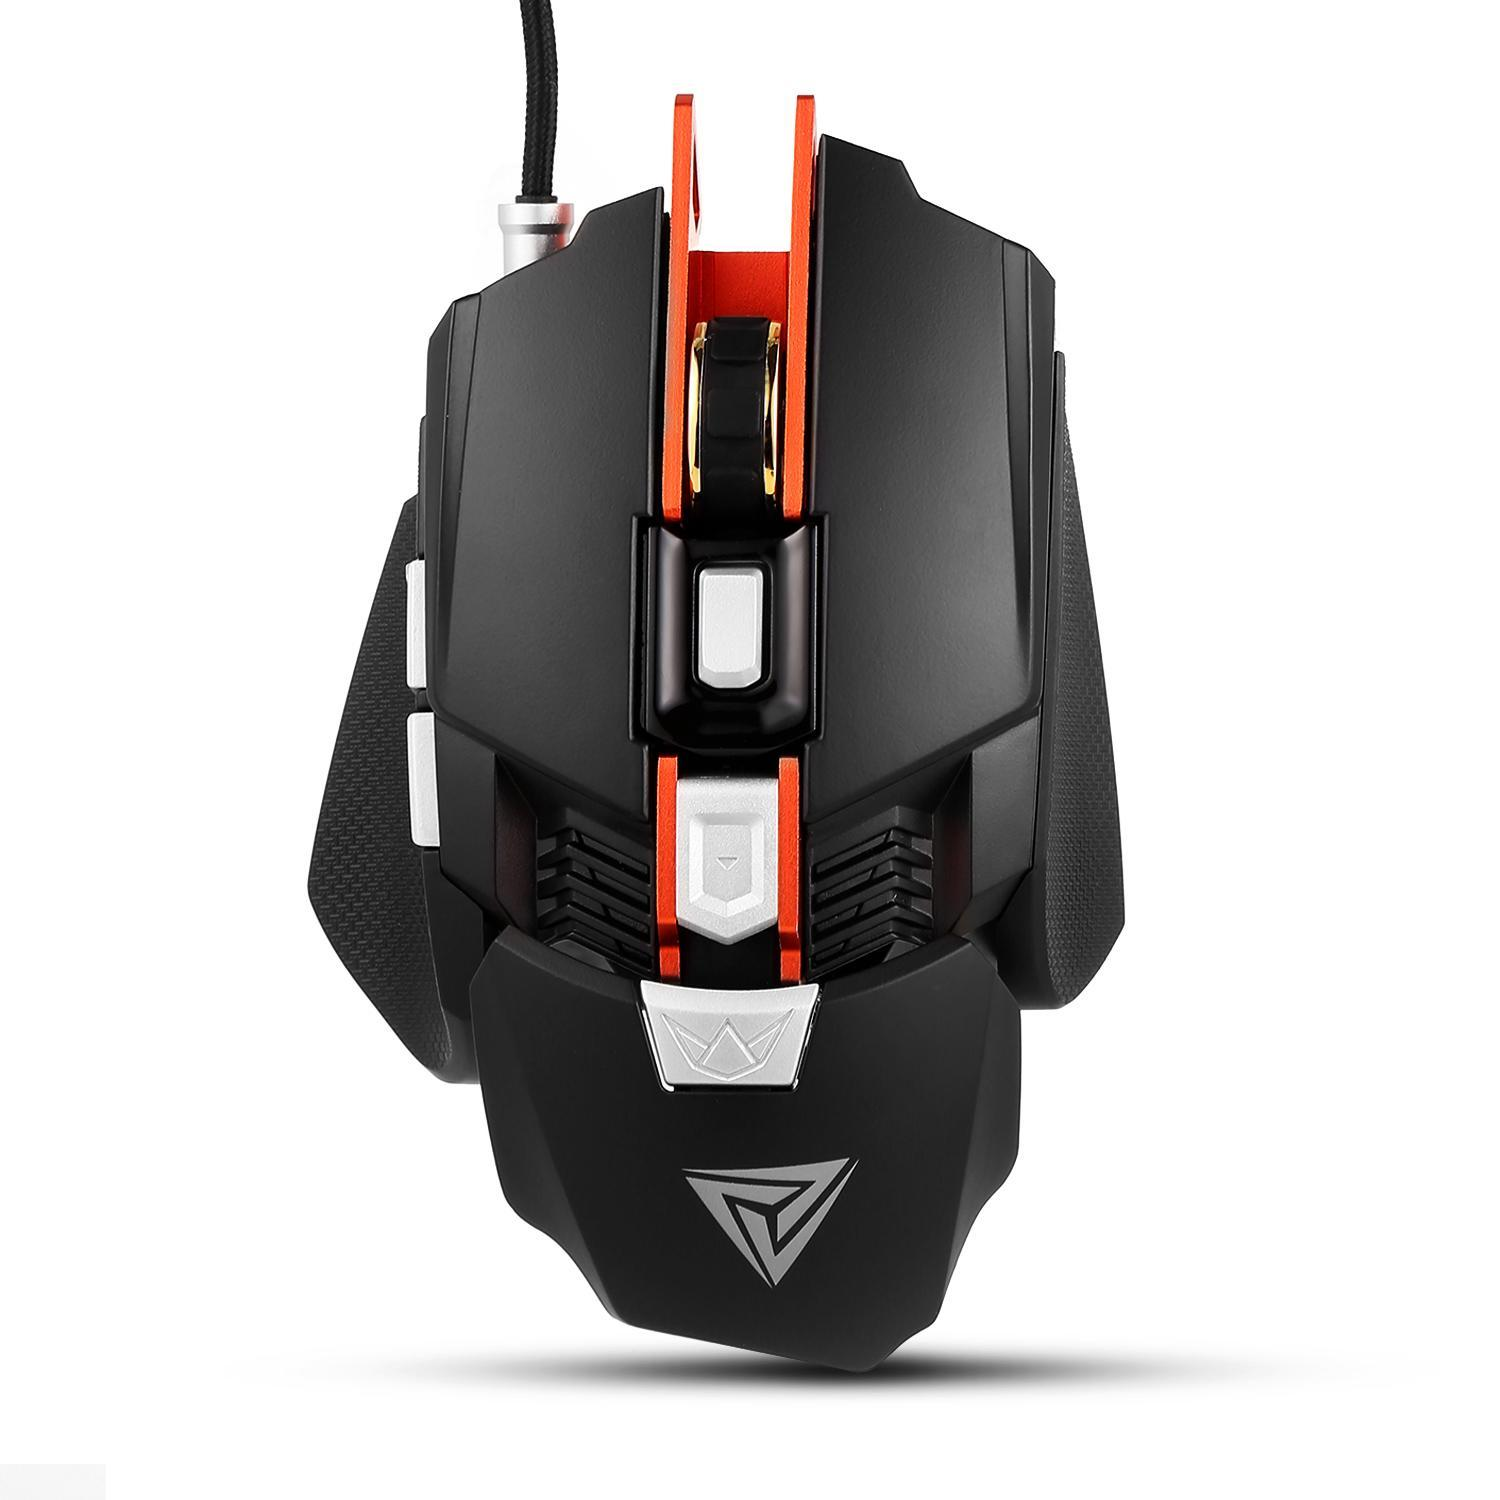 2019 The Newest! Professional Gaming Mouse RGB Mechanical Mouse 4000DPI 7 Button Wired Gaming Mouse 4 Color Changing Mice for PC Laptop Desktop HFON